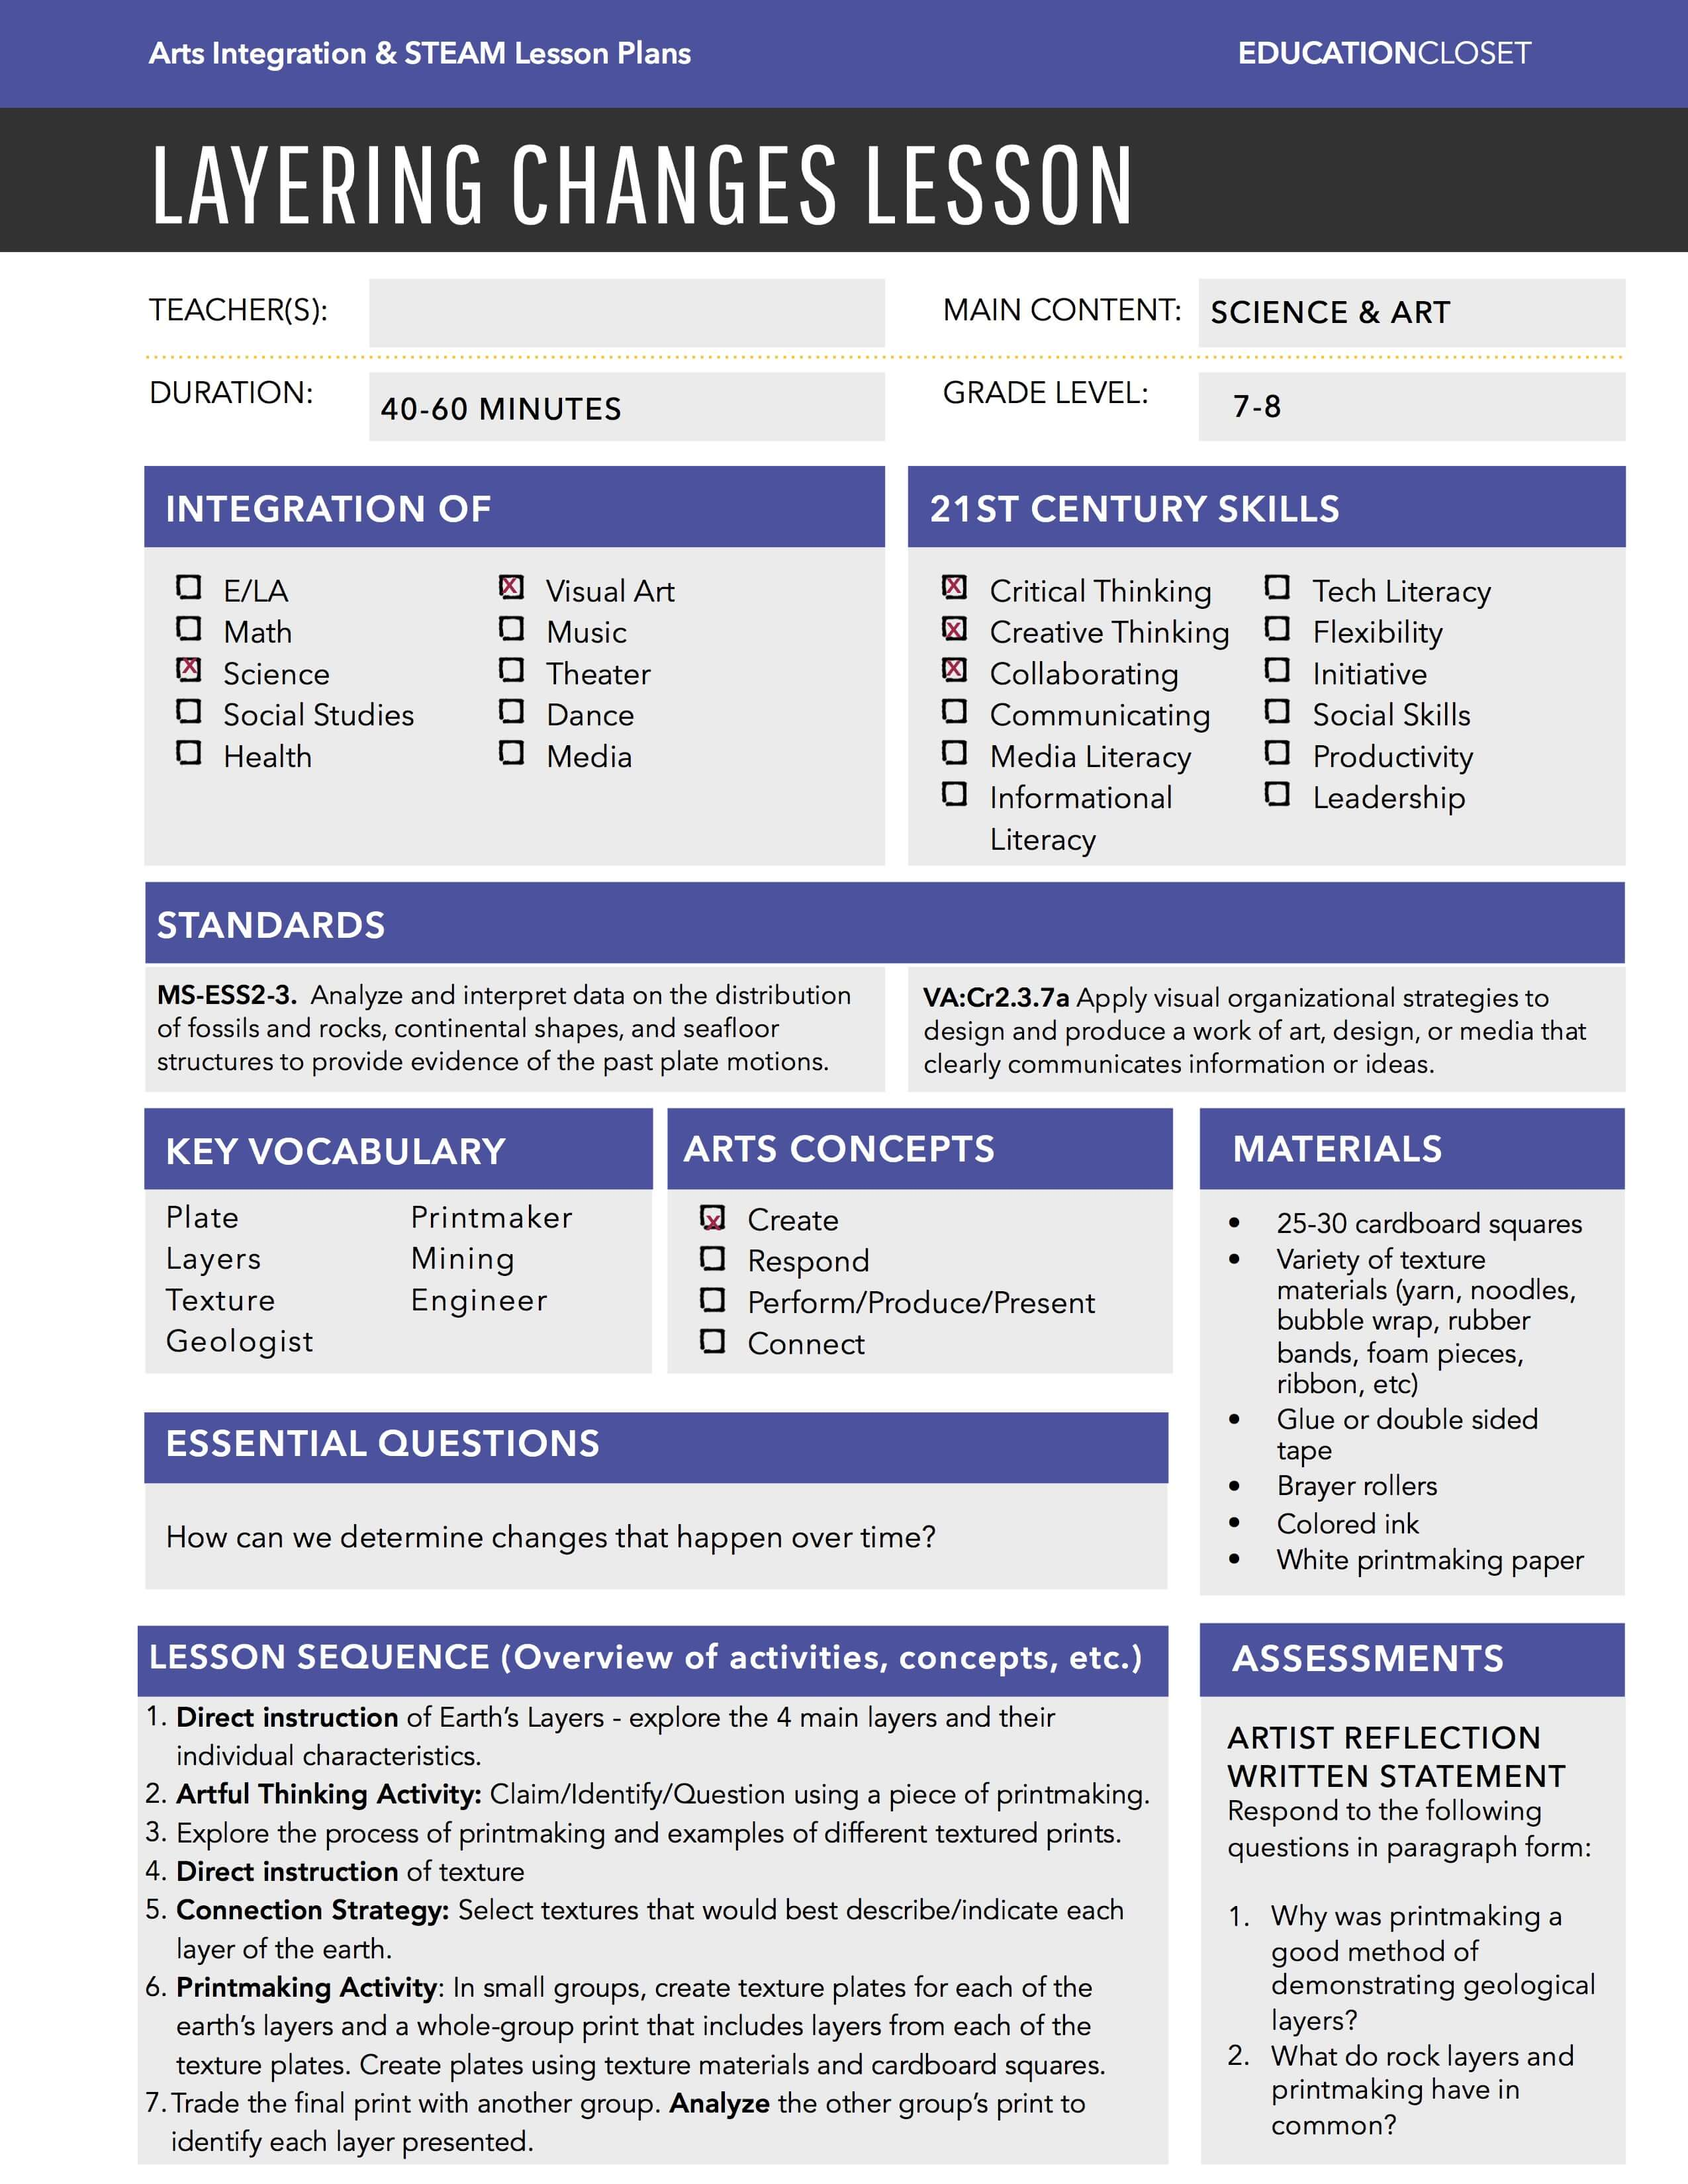 Arts Integration Lesson Plans EducationCloset - 21st century lesson plan template